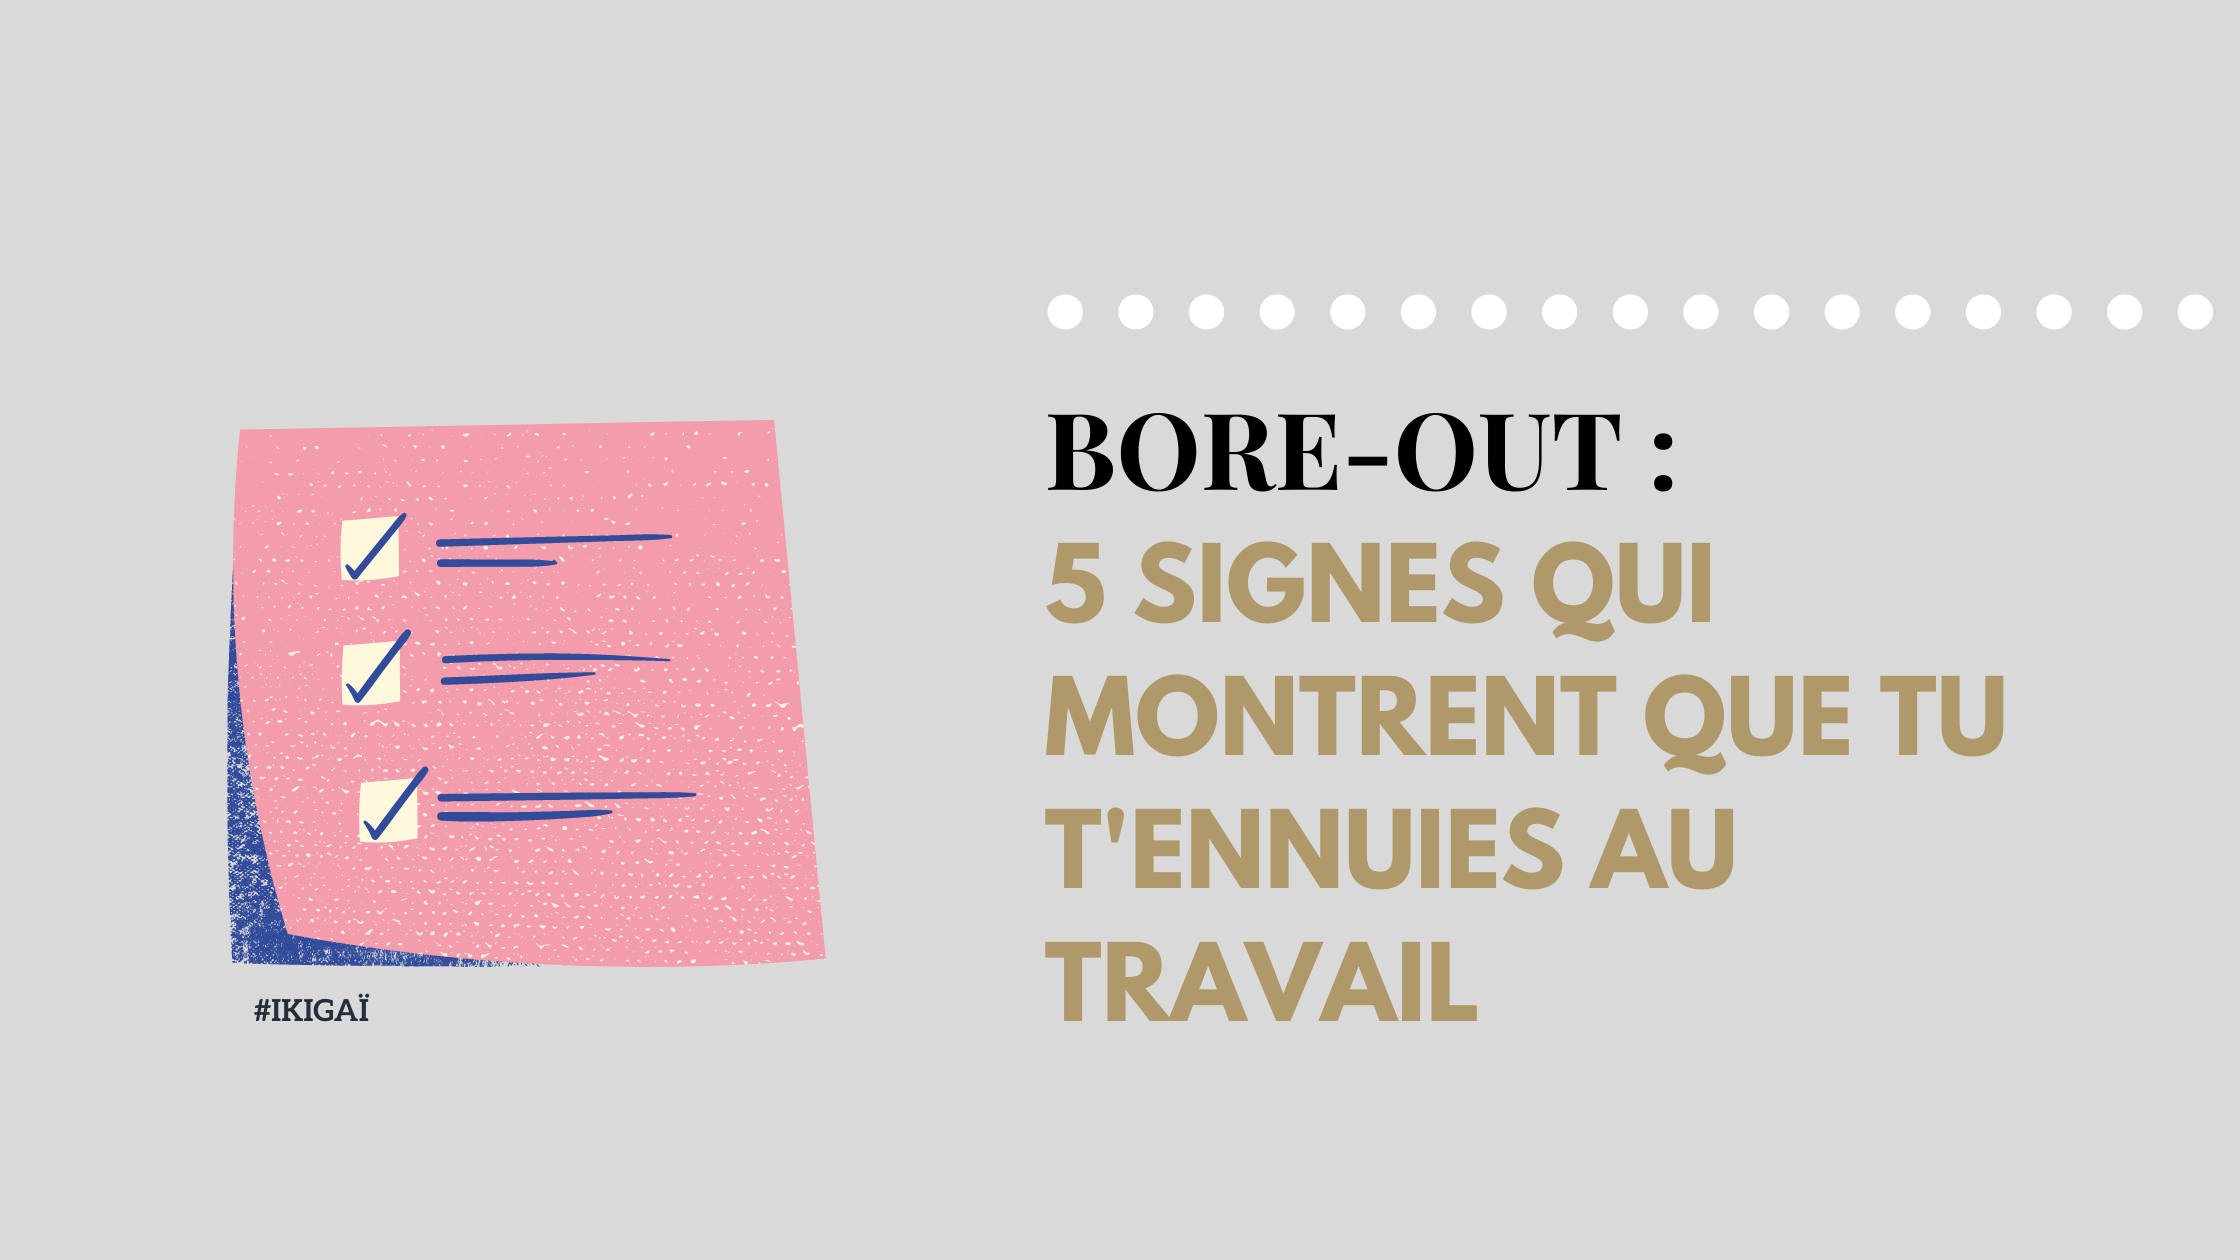 Bore out : 5 signes que tu t'ennuies au travail